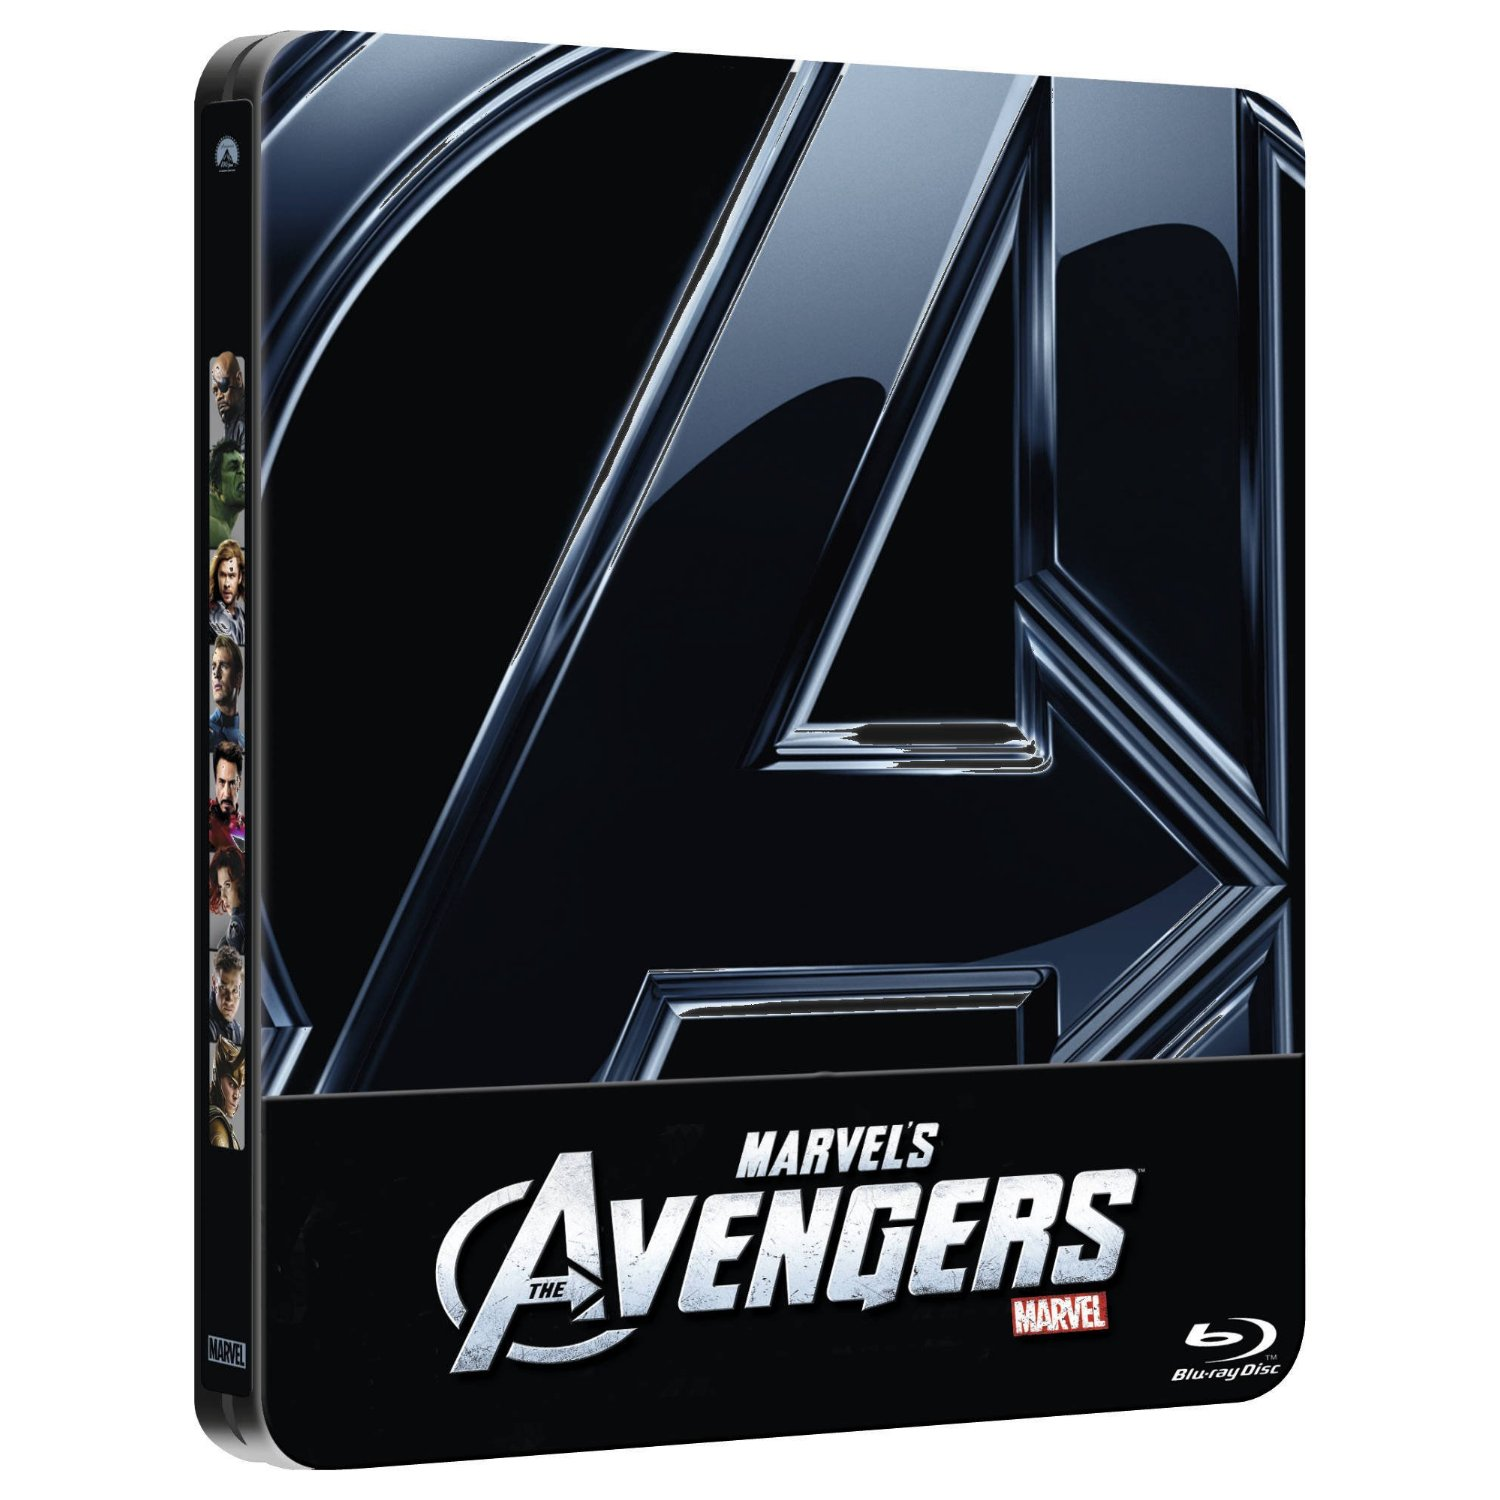 Avengers Blu-Ray Limited edition steelbook